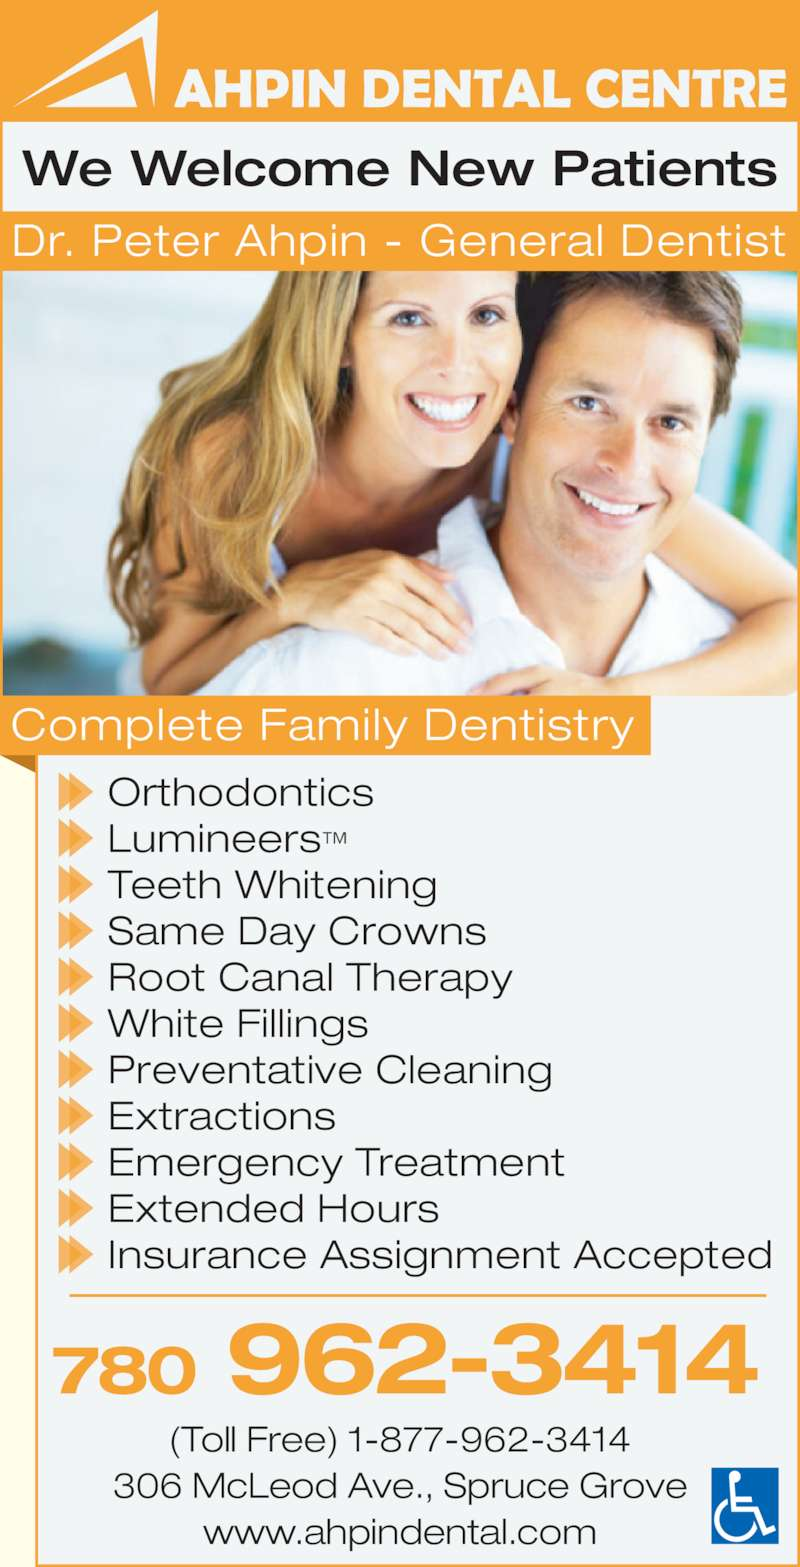 Ahpin Dental Centre (7809623414) - Display Ad - 780 962-3414 (Toll Free) 1-877-962-3414 306 McLeod Ave., Spruce Grove www.ahpindental.com We Welcome New Patients Orthodontics Lumineers? Teeth Whitening Same Day Crowns Root Canal Therapy White Fillings Preventative Cleaning Extractions Emergency Treatment Extended Hours Insurance Assignment Accepted Complete Family Dentistry Dr. Peter Ahpin - General Dentist